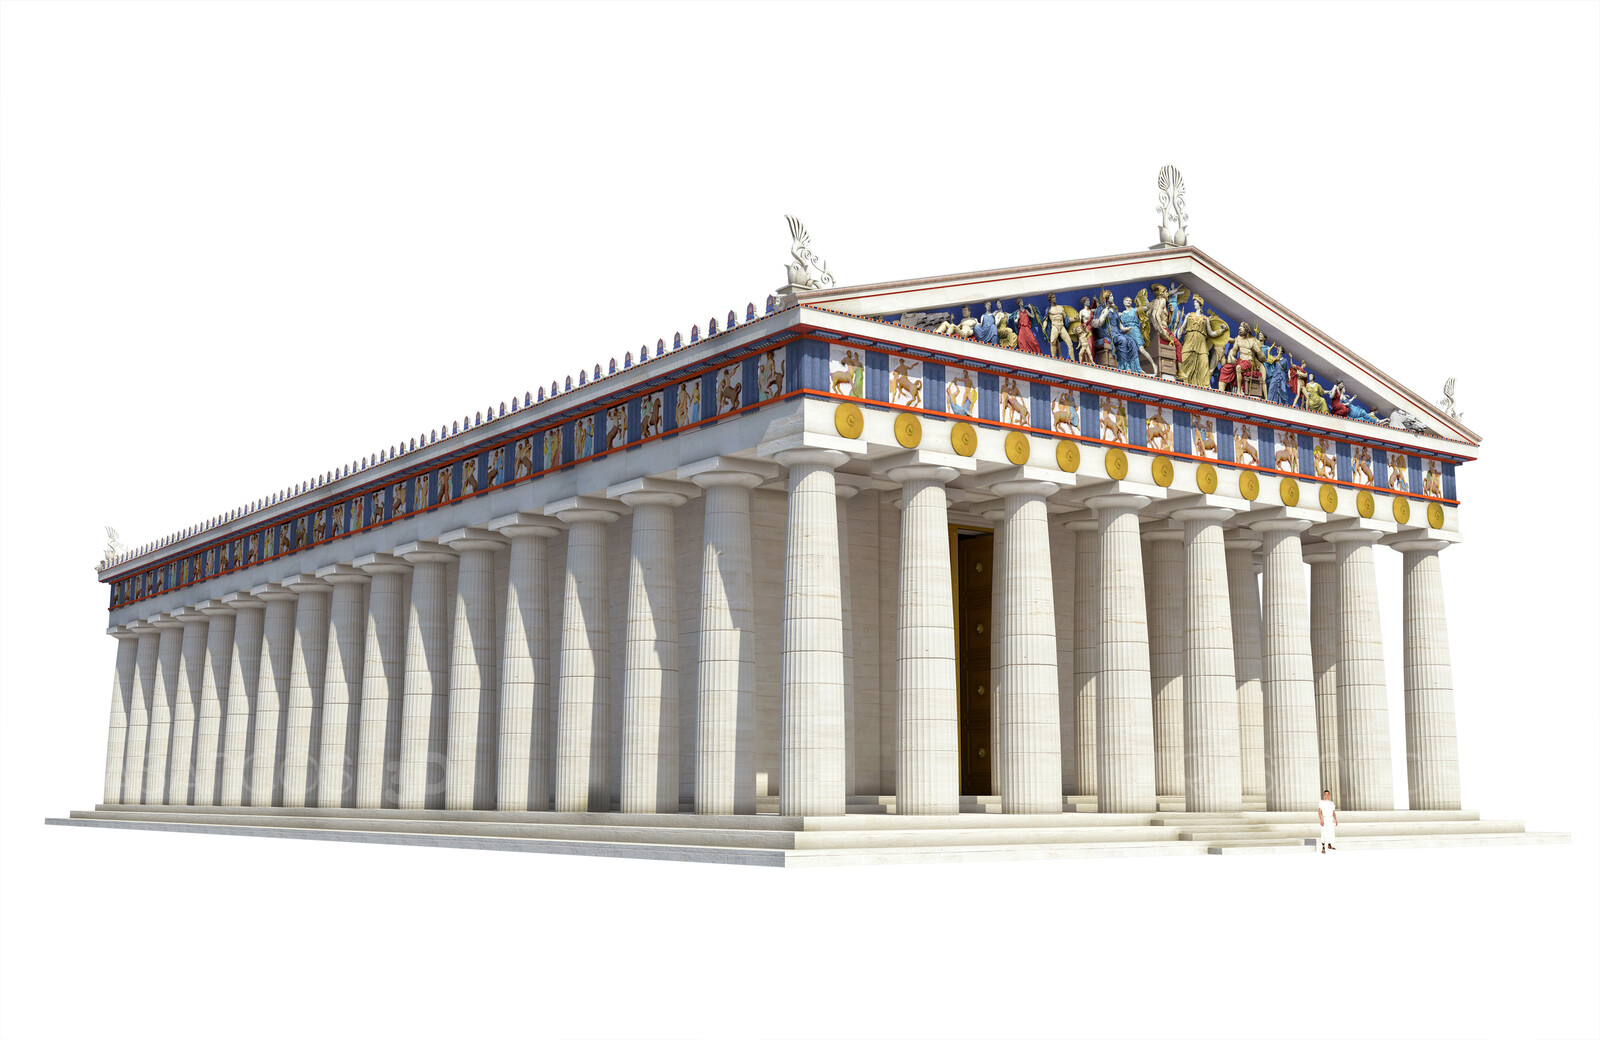 Reconstruction of the Parthenon in Athens.